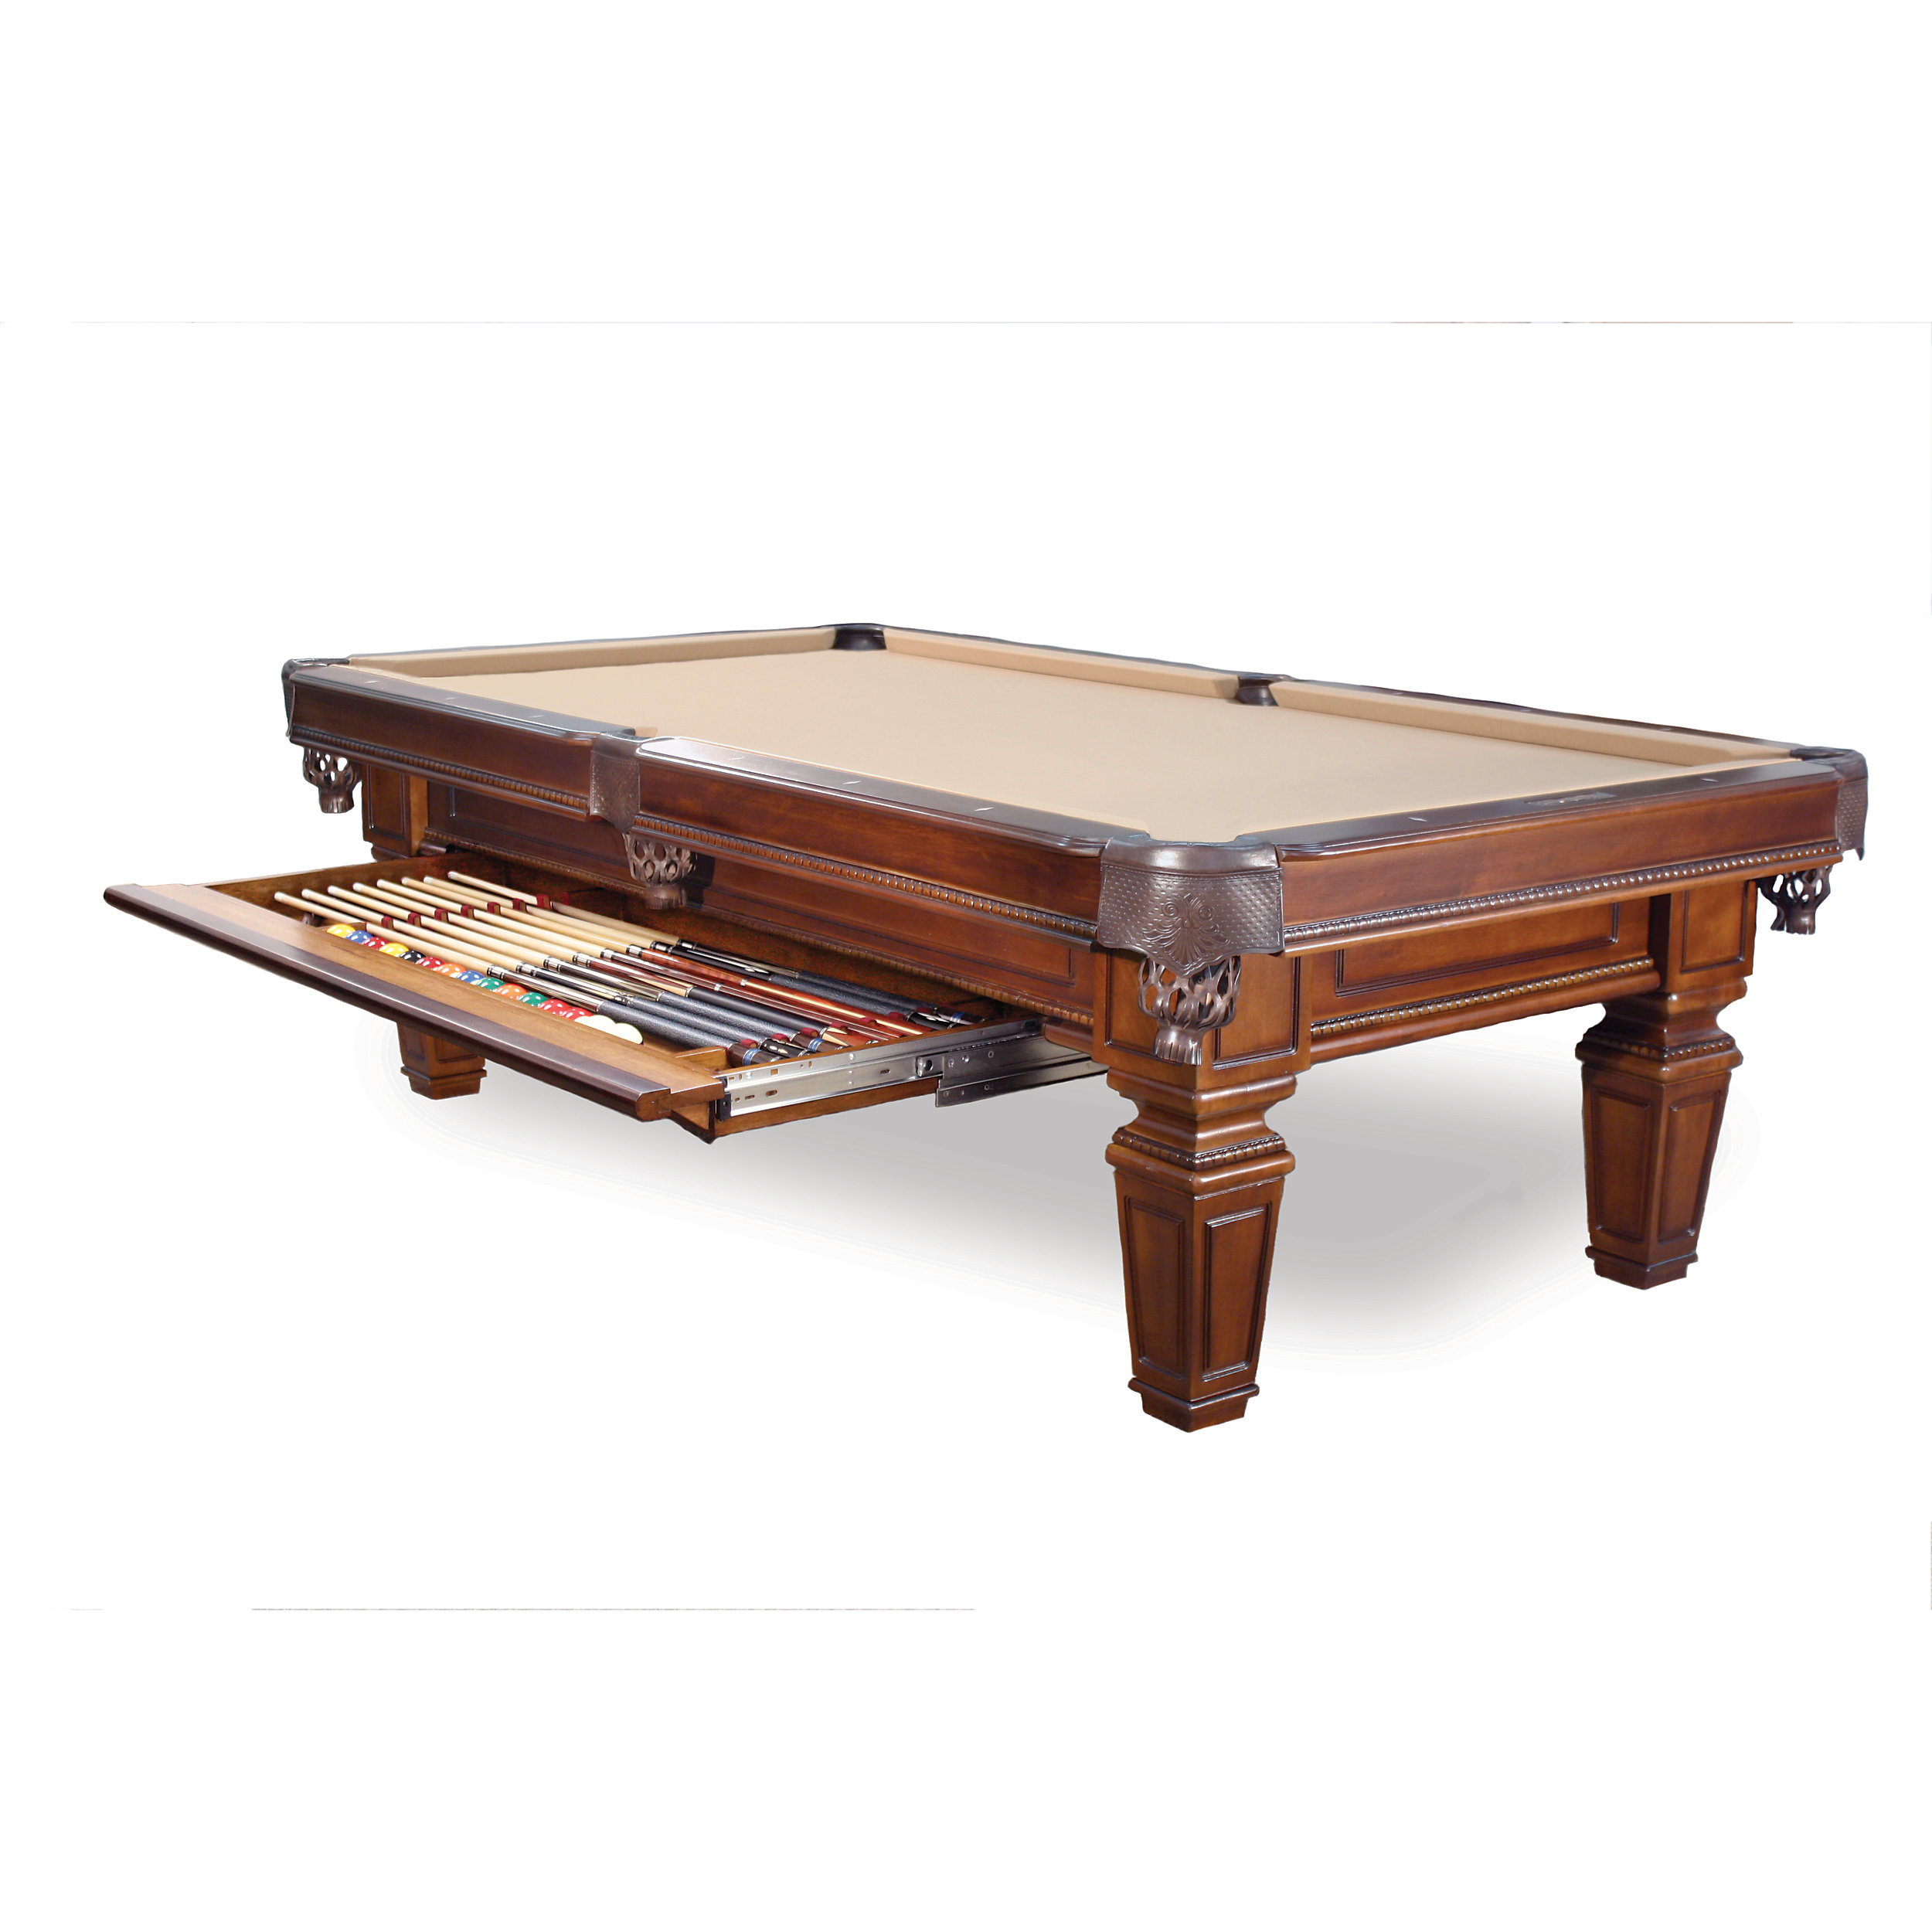 Belfast Classic Wood Pool Table Pool Table With Storage Drawer - Mid century modern pool table